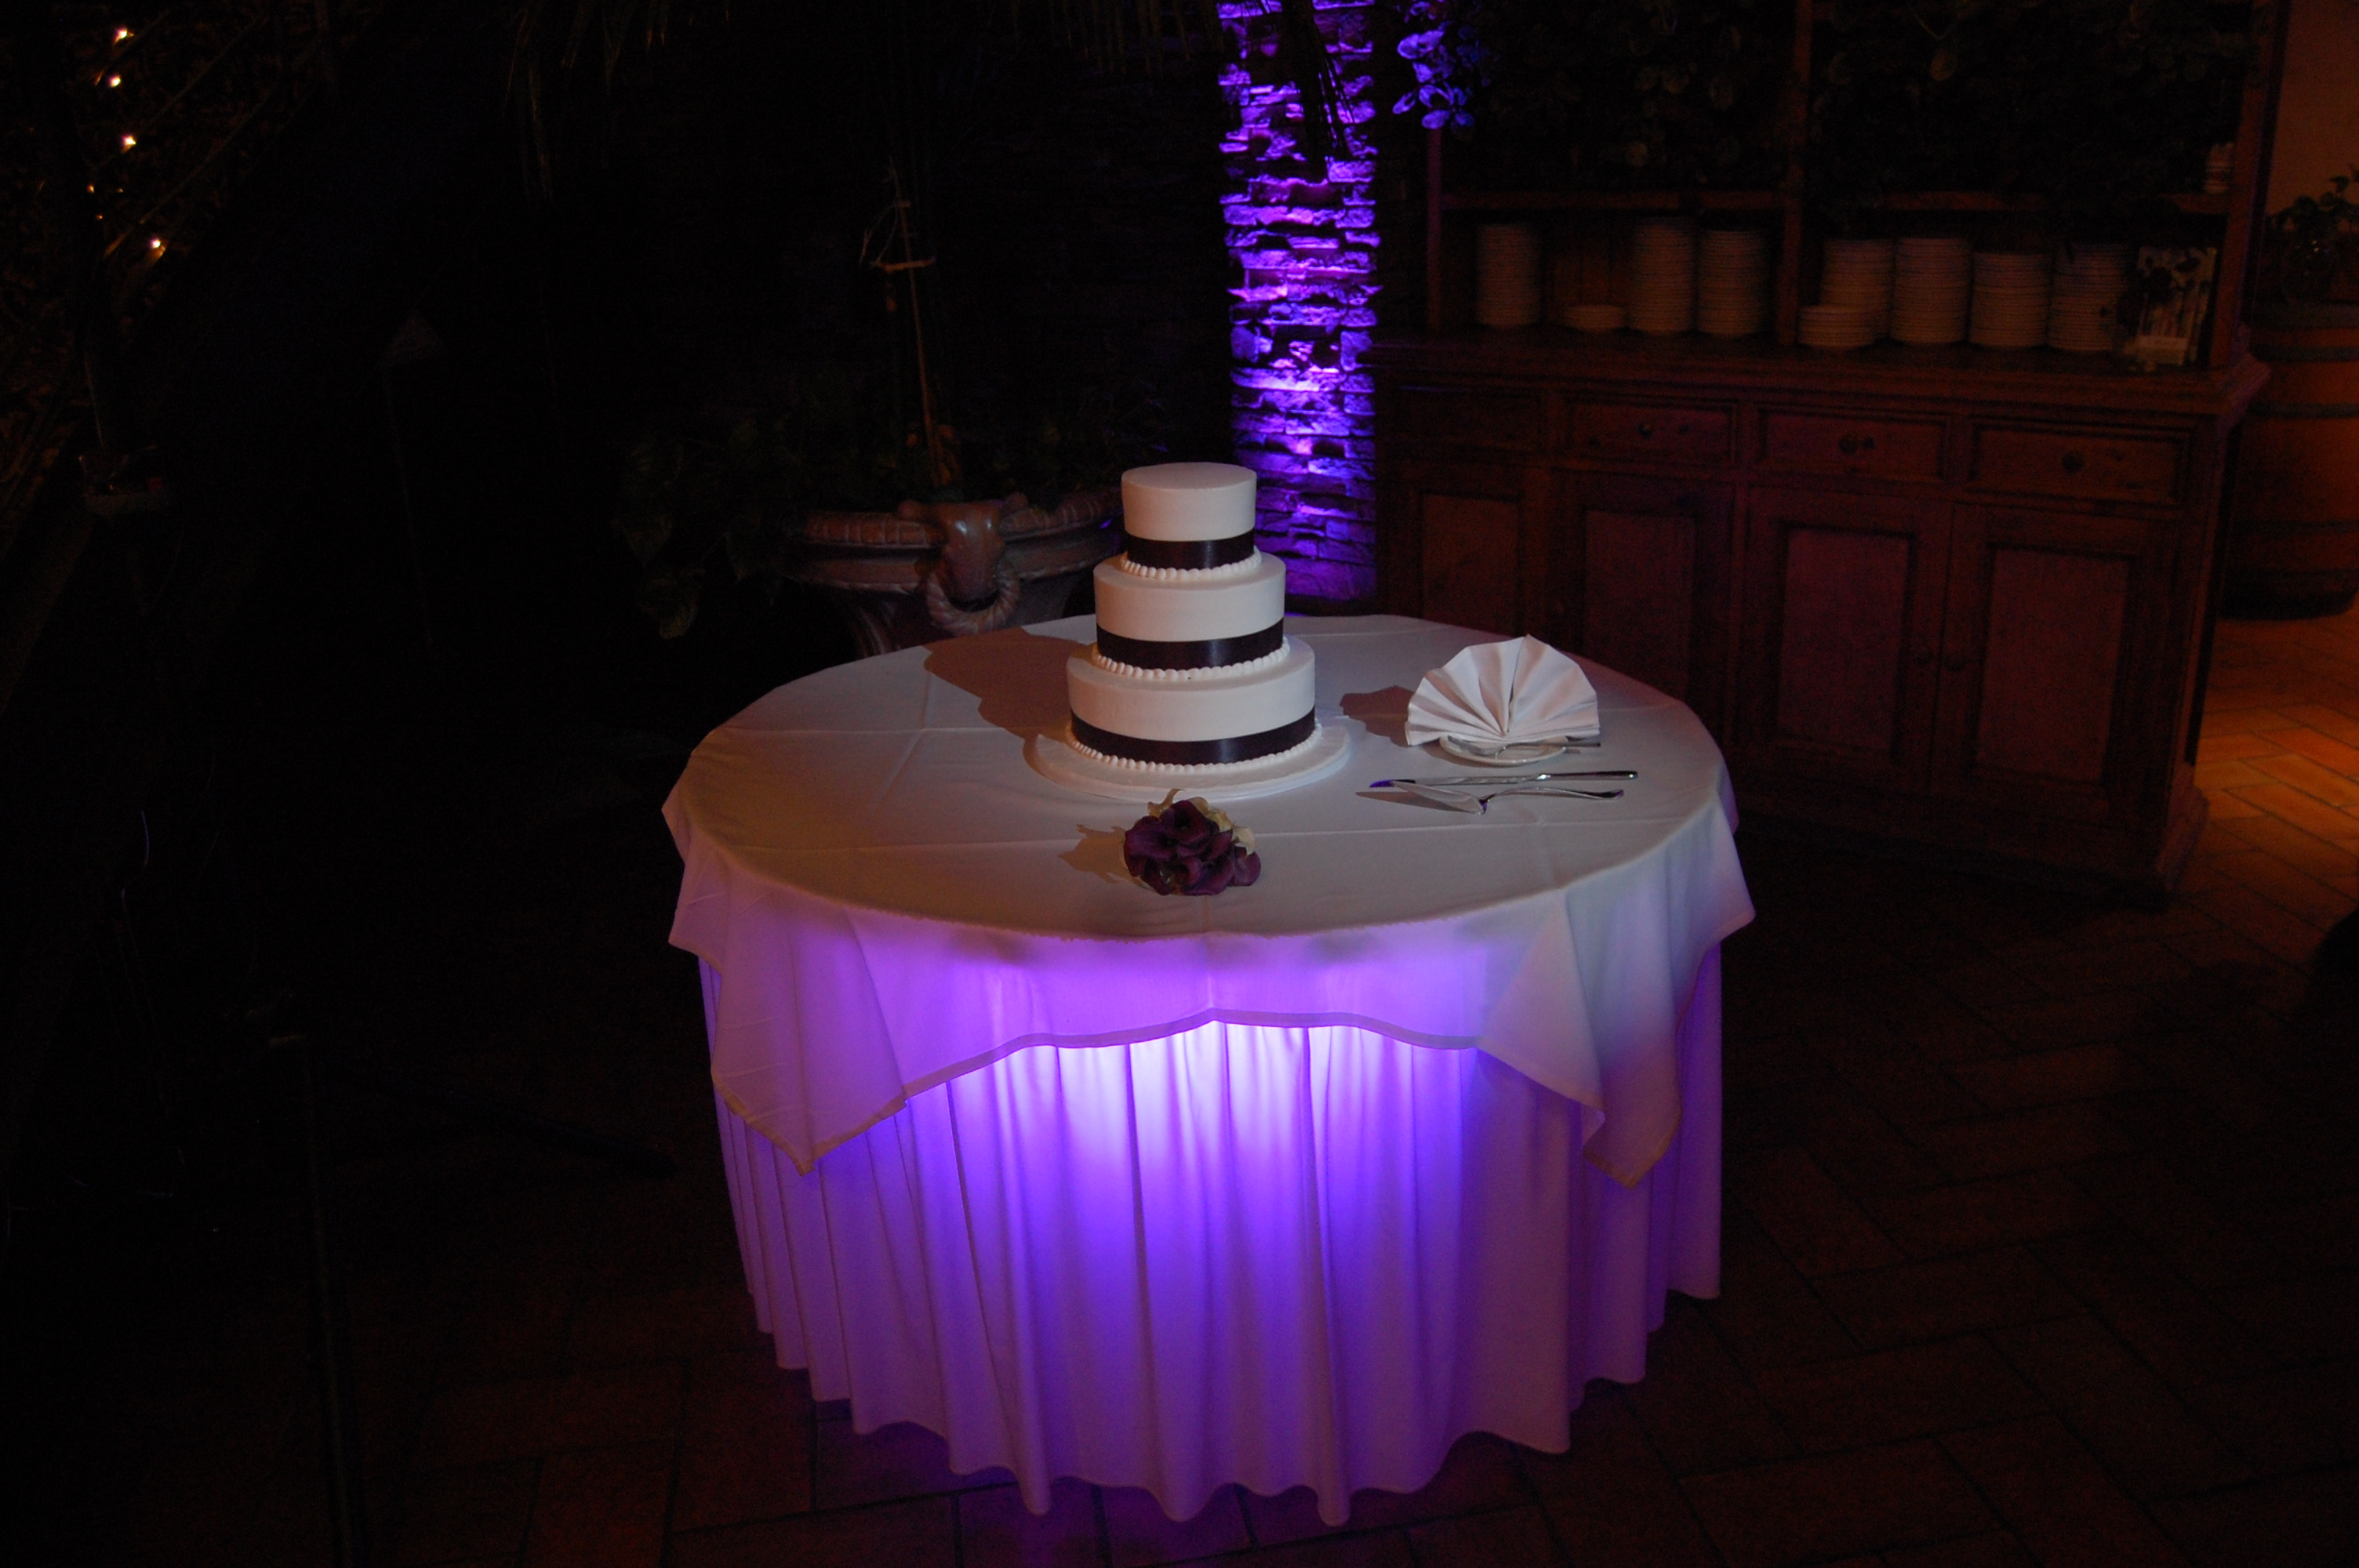 Cake pin spot with wireless led up light underneath table skirt